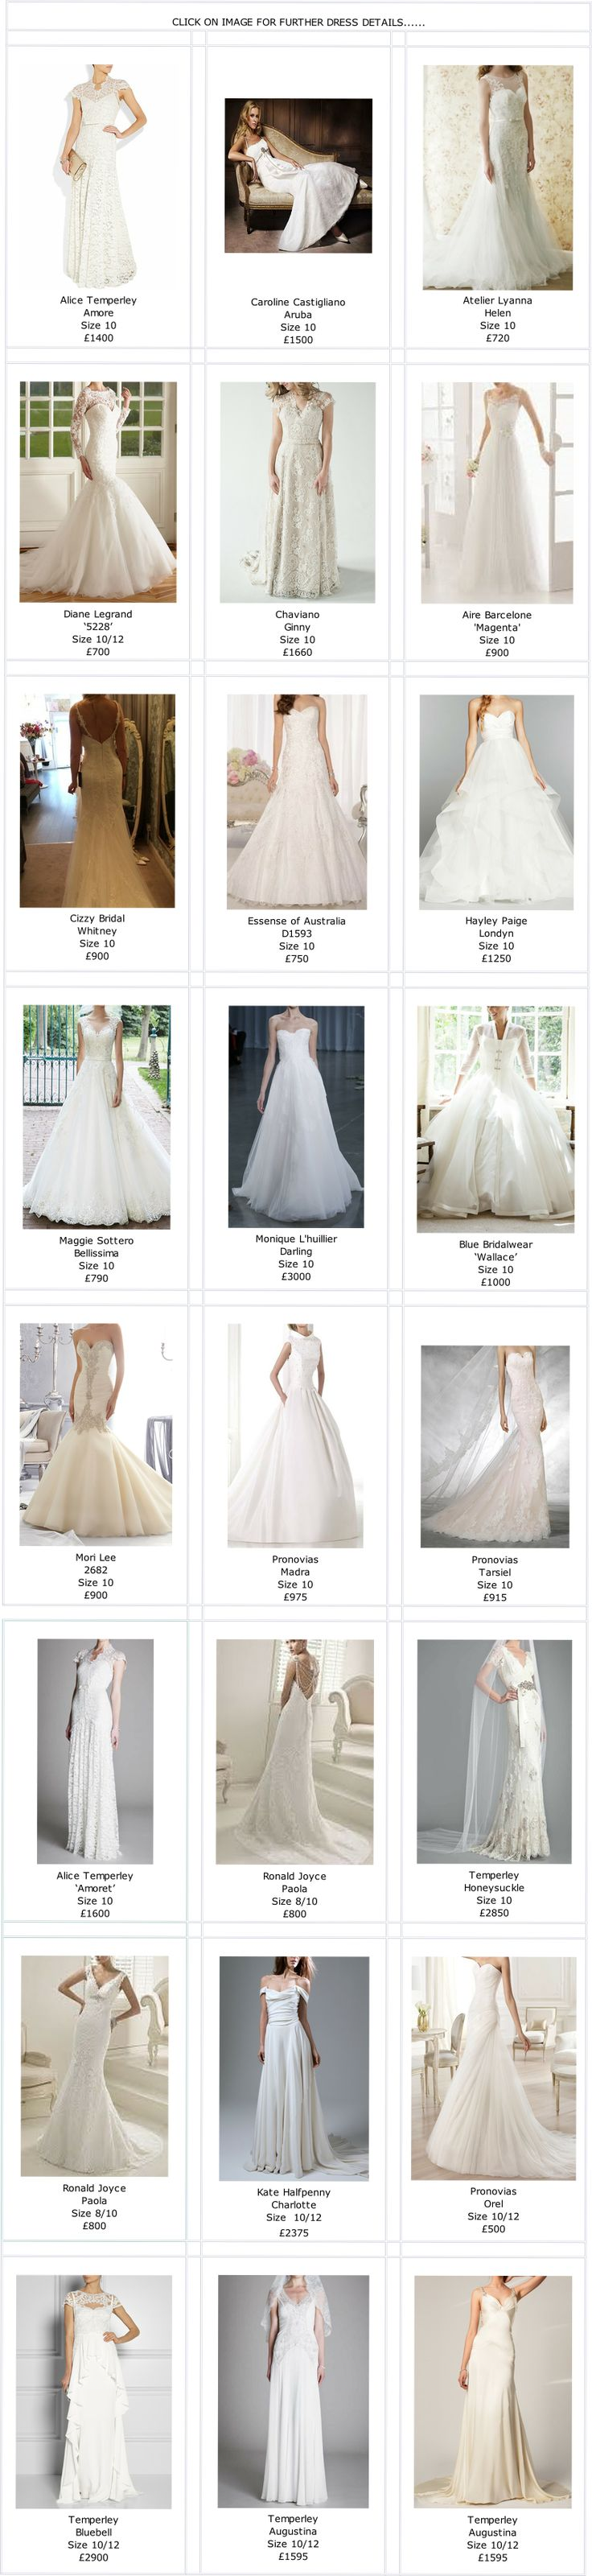 Brides Dress Revisited | Full Collection Details of Second Hand Designer Wedding Dresses